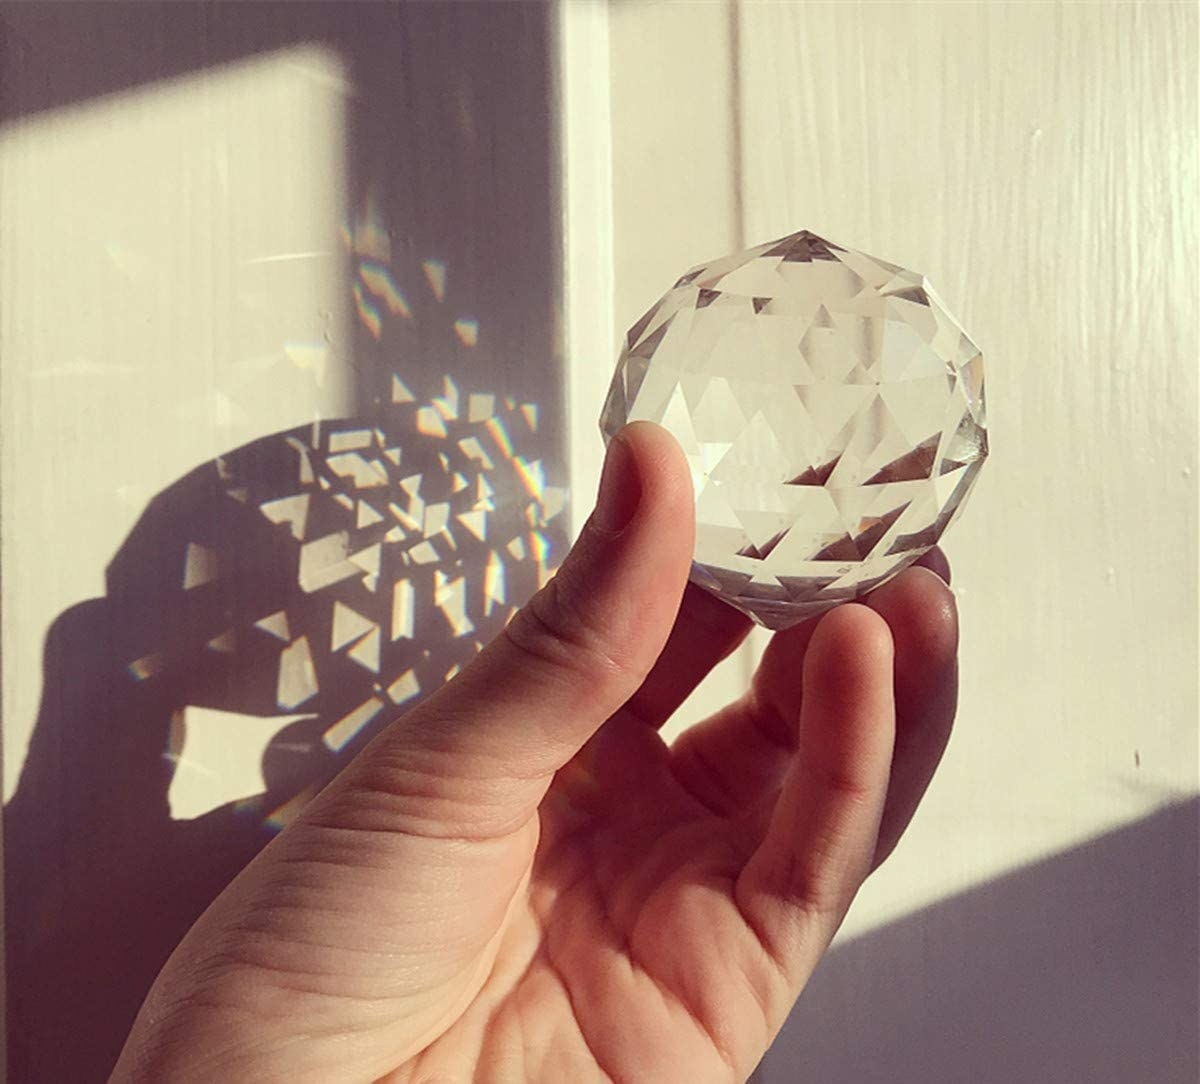 person holding the crystal with light shining through it